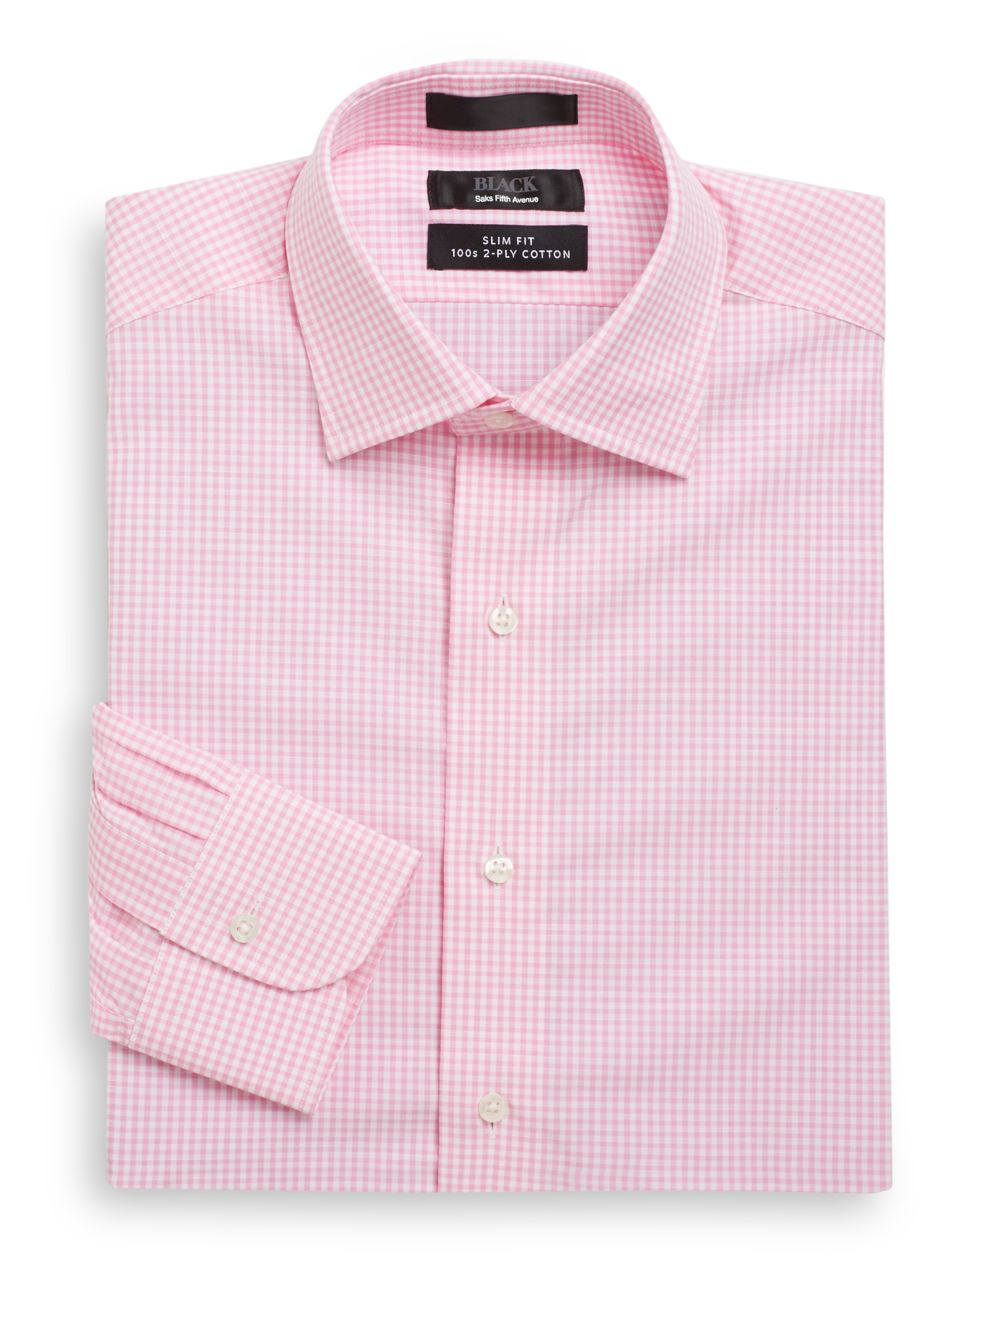 Saks fifth avenue black label slim fit mini gingham two for 2 ply cotton dress shirt